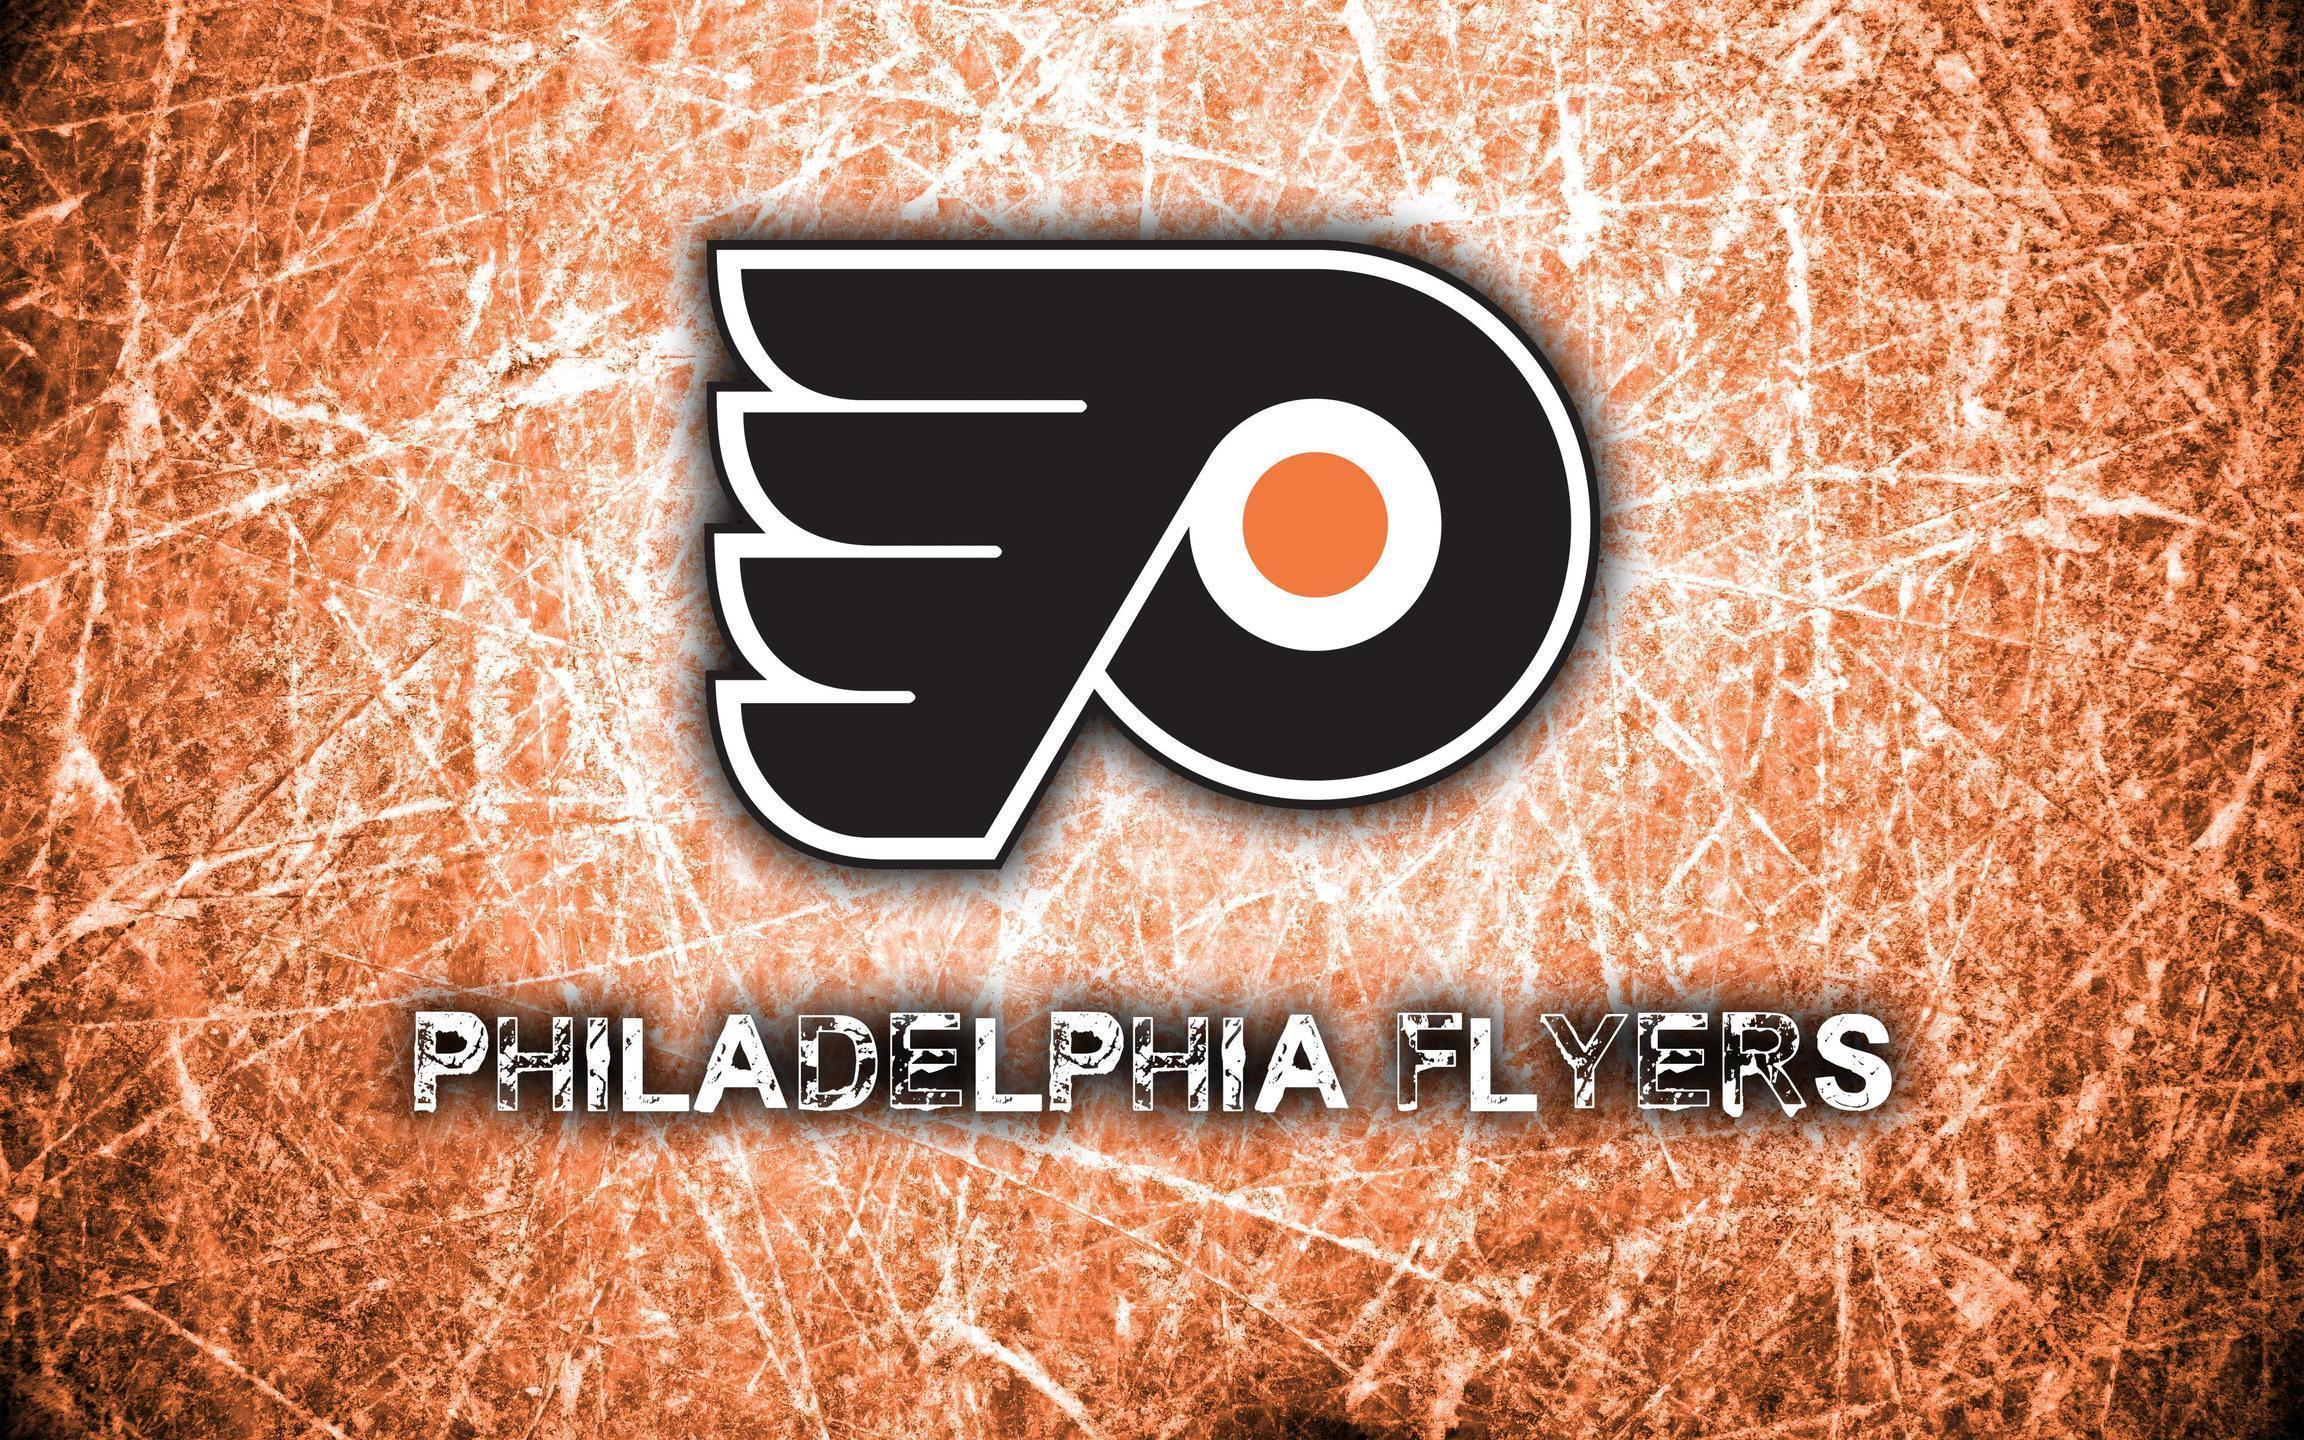 Philadelphia Flyers 2014 Logo Wallpaper Wide Or HD